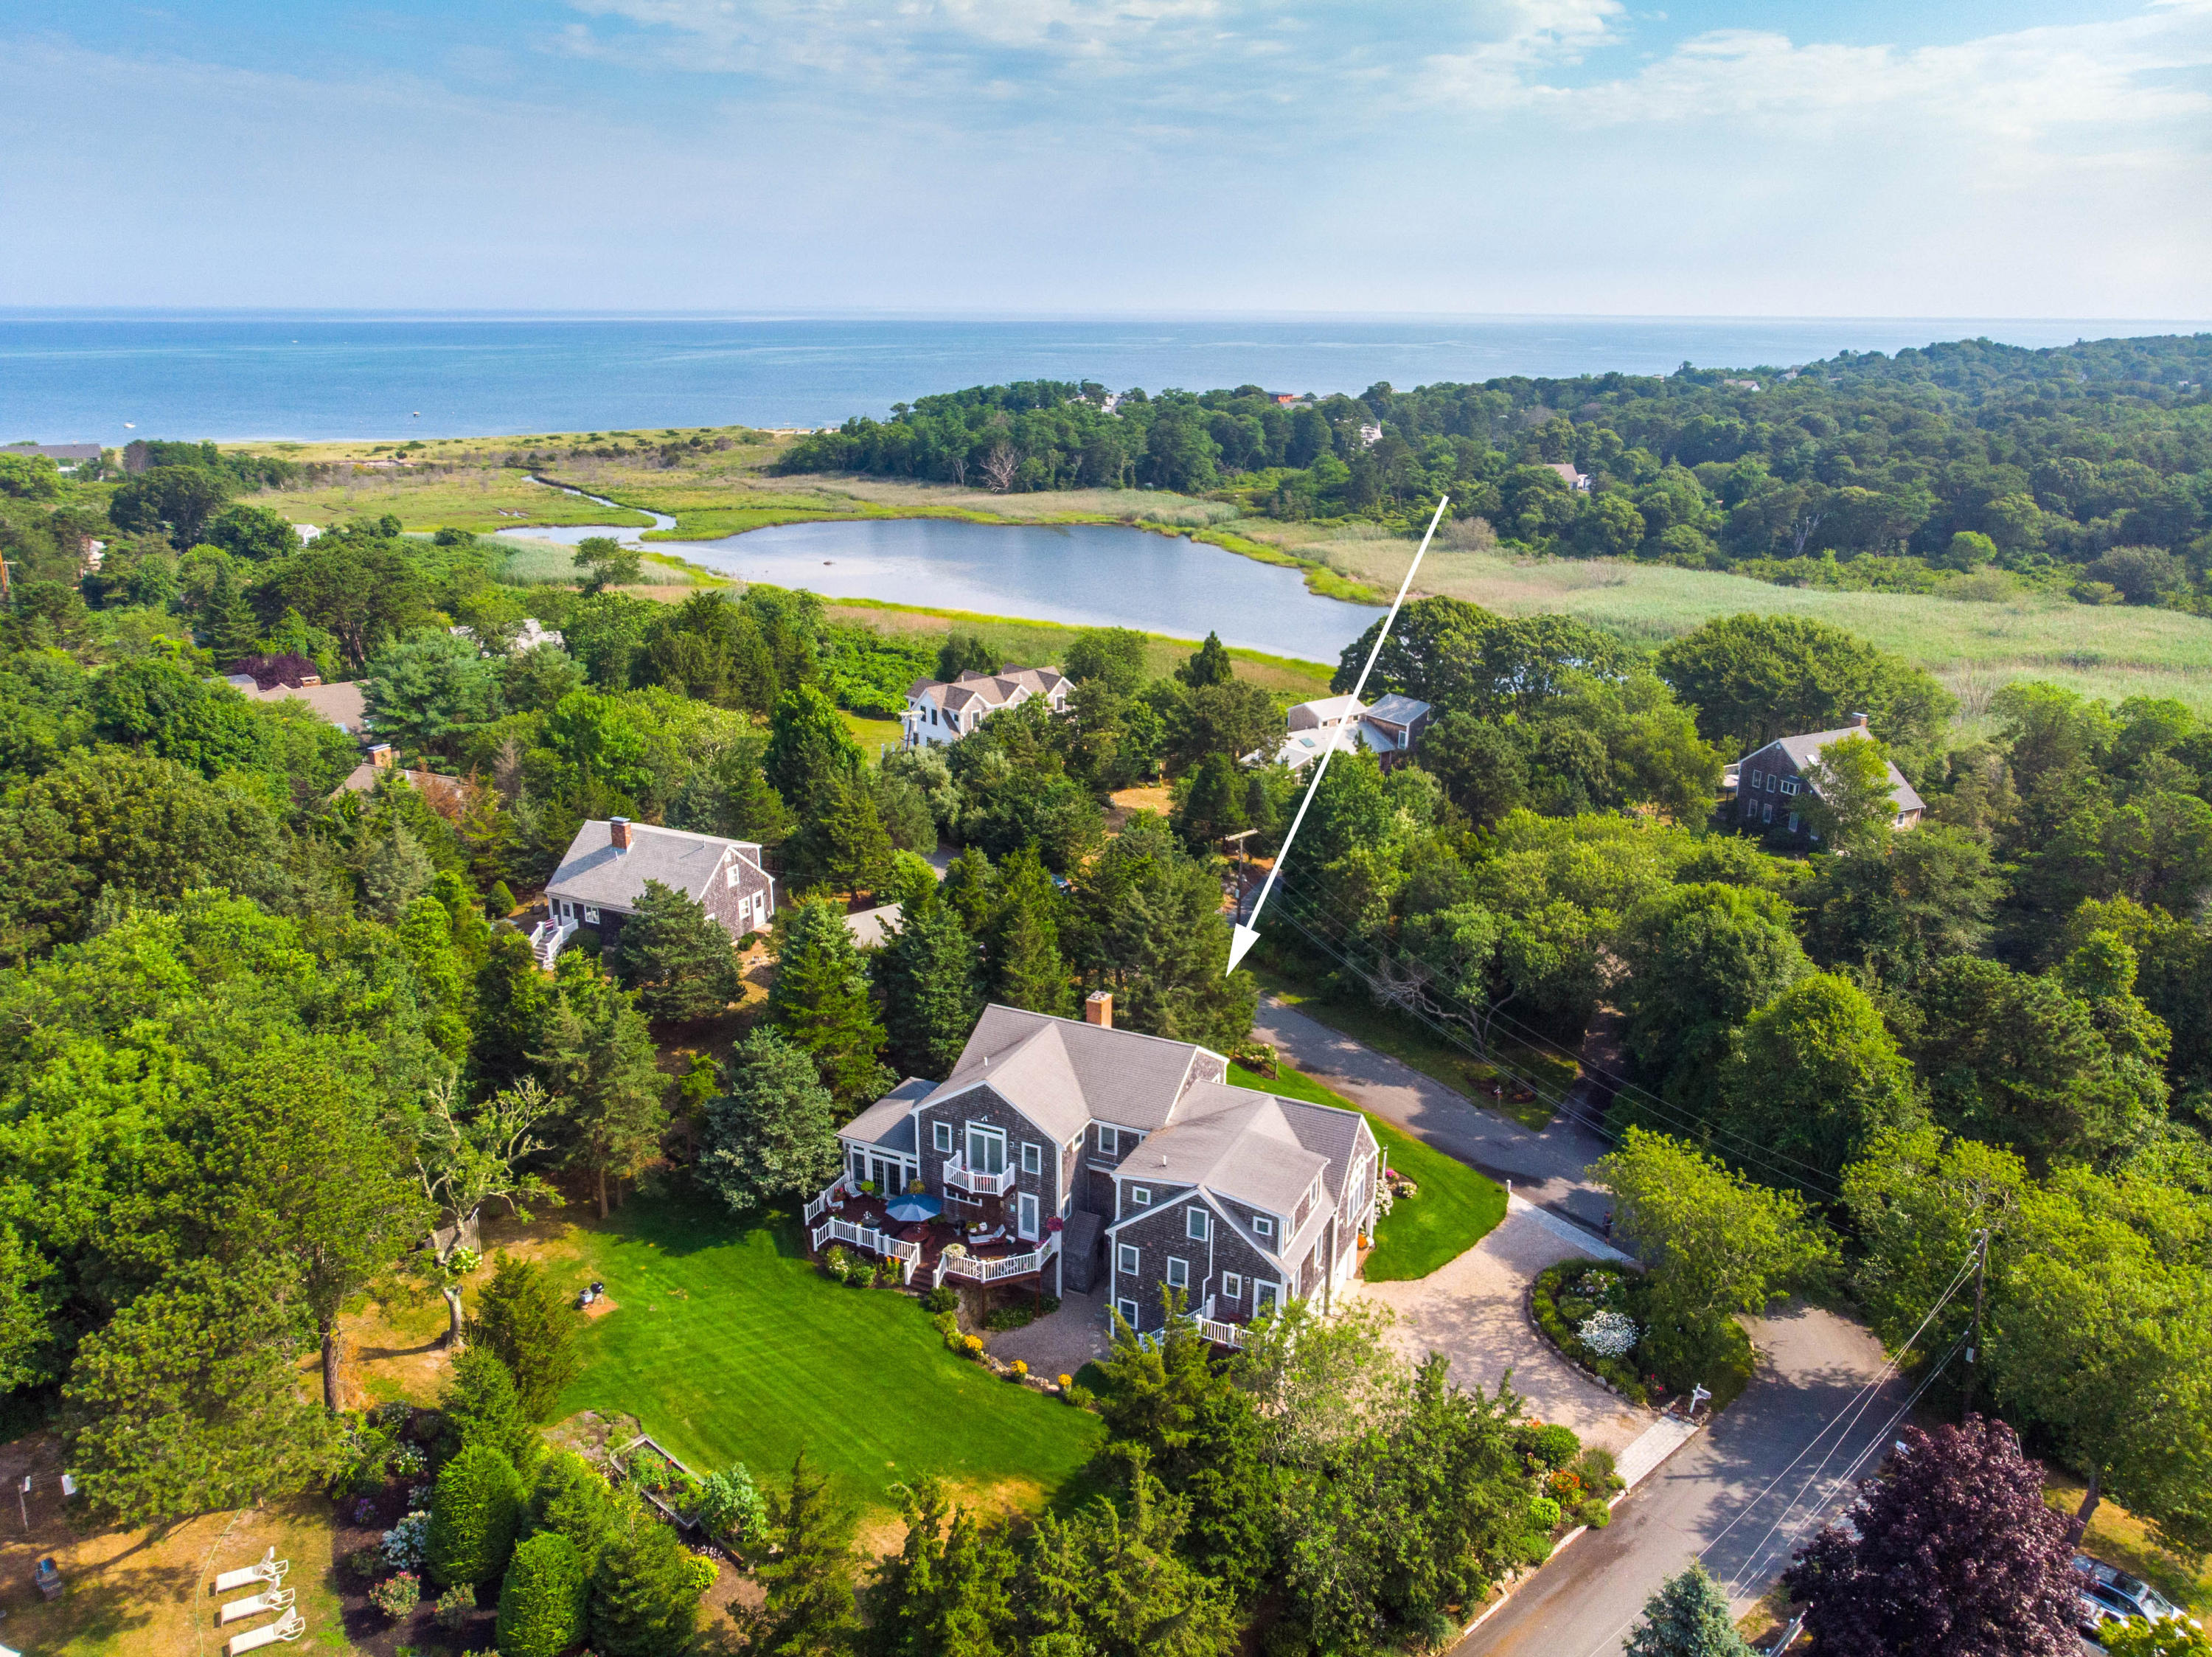 43 Captain Youngs Way, Brewster MA, 02631 sales details